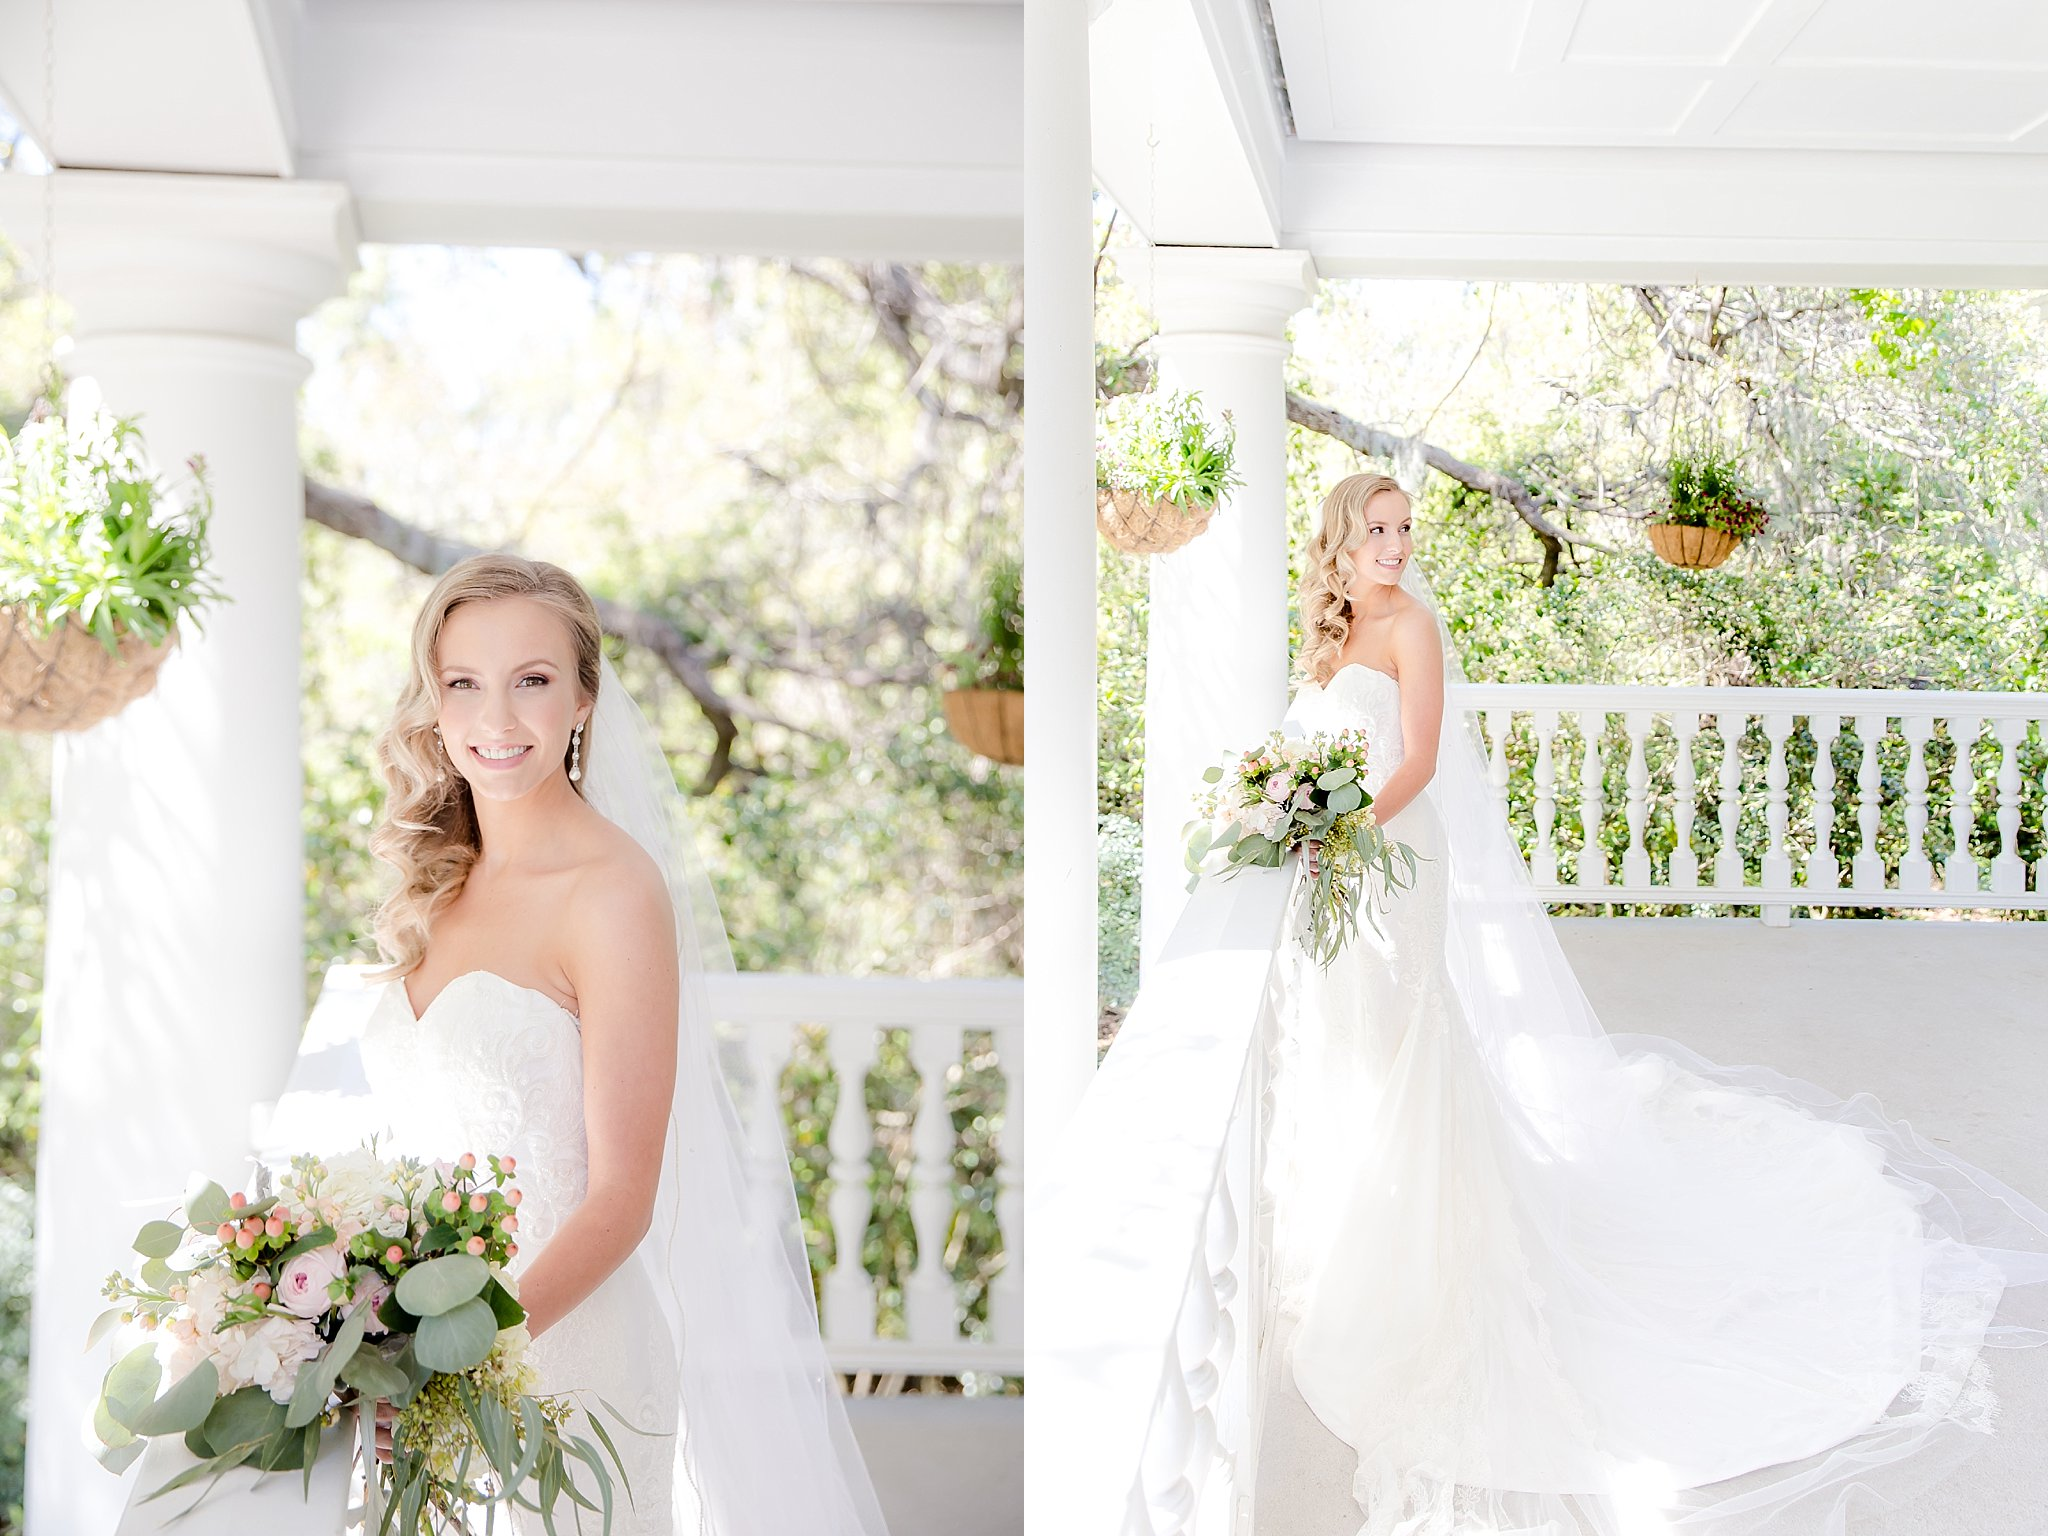 Photography:  Adrienne Cooper Photography  | Venue:  Magnolia Plantation  | Wedding Dress: Kelly Faetanini from  The Bridal House of Charleston  | Hair + Makeup:  BlushAir Bridal Hair and Makeup   | Bouquet: Stephanie Dickerson